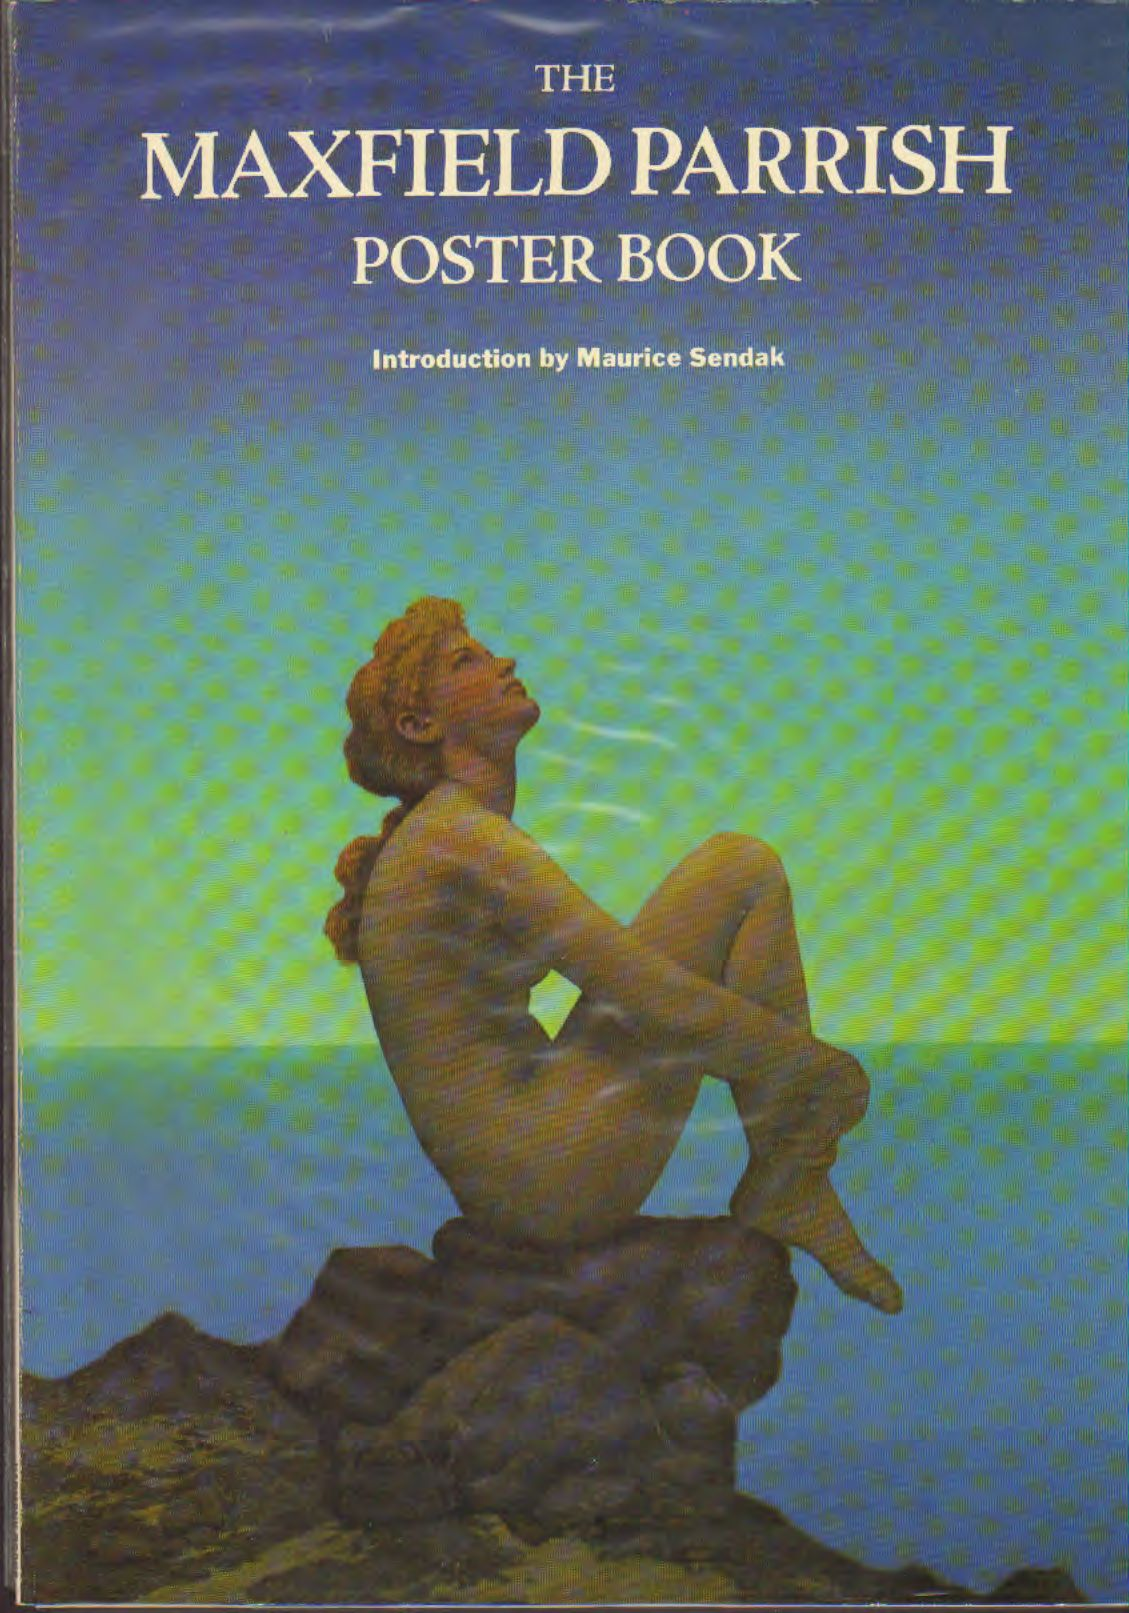 Maxfield Parrish - The Maxfield Parrish Poster Book